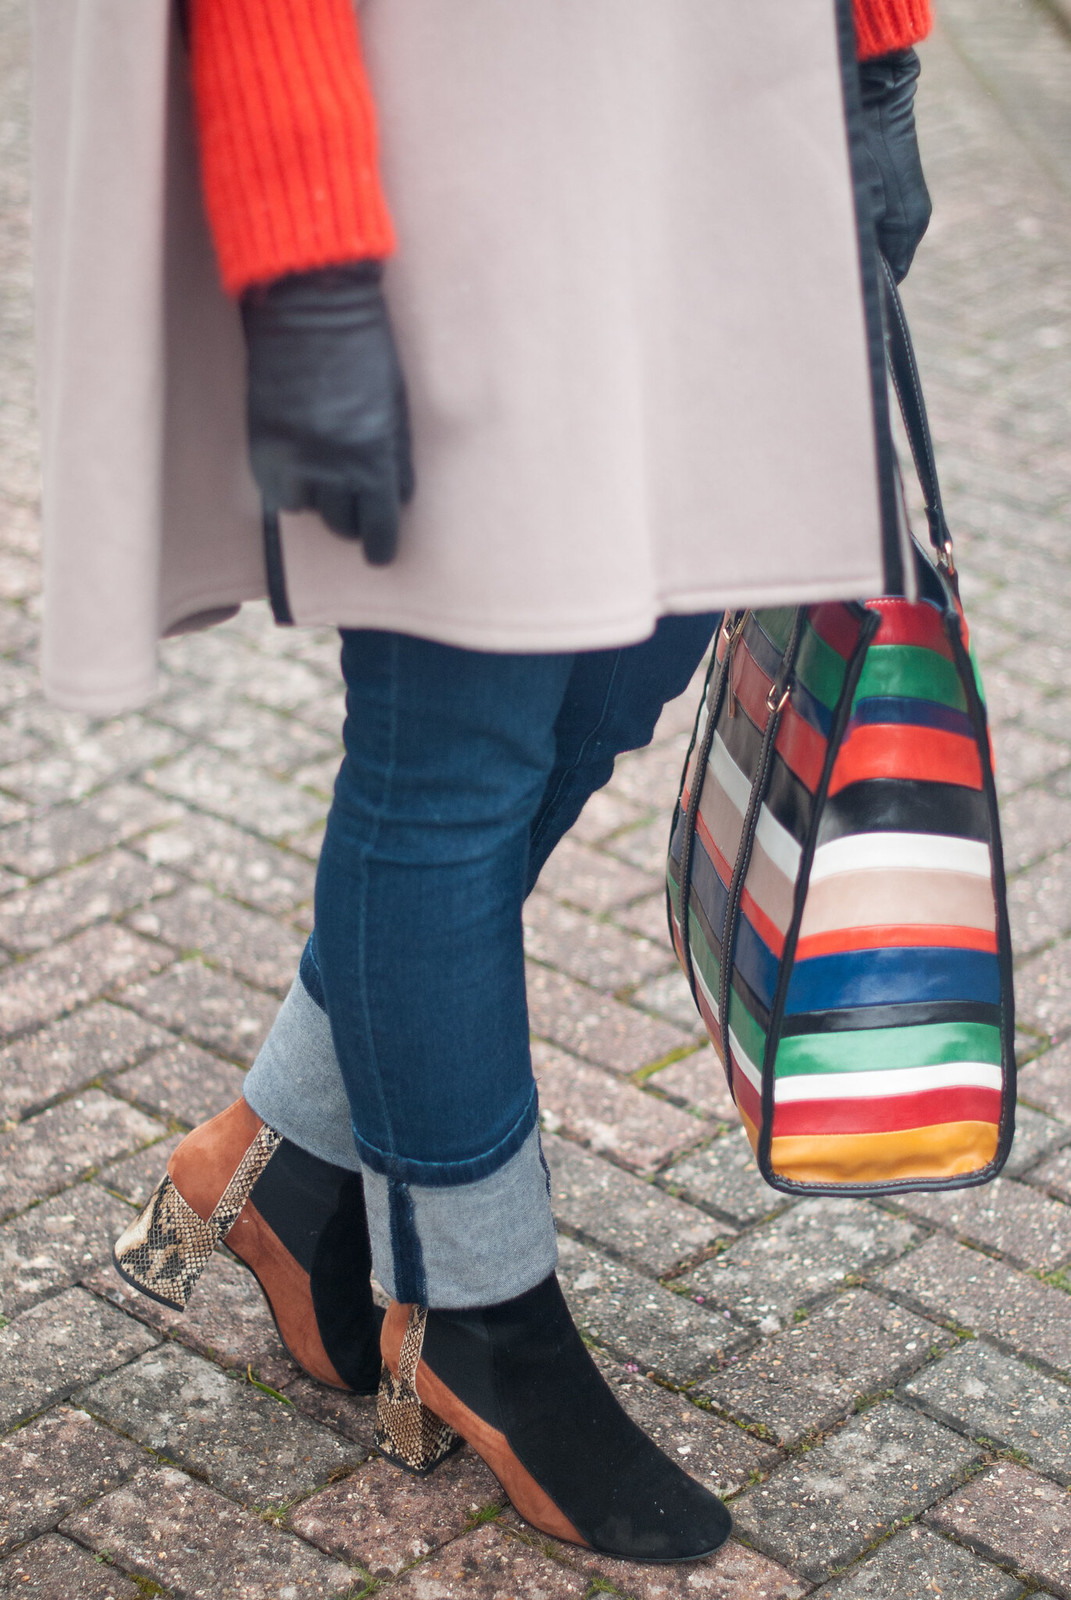 A Parisian Chic Winter Outfit, Over 40 Style \ camel wool cape \ ear muffs \ orange thick knit sweater \ rolled-hem jeans \ two-tone ankle boots \ rainbow-stripe tote bag | Not Dressed As Lamb